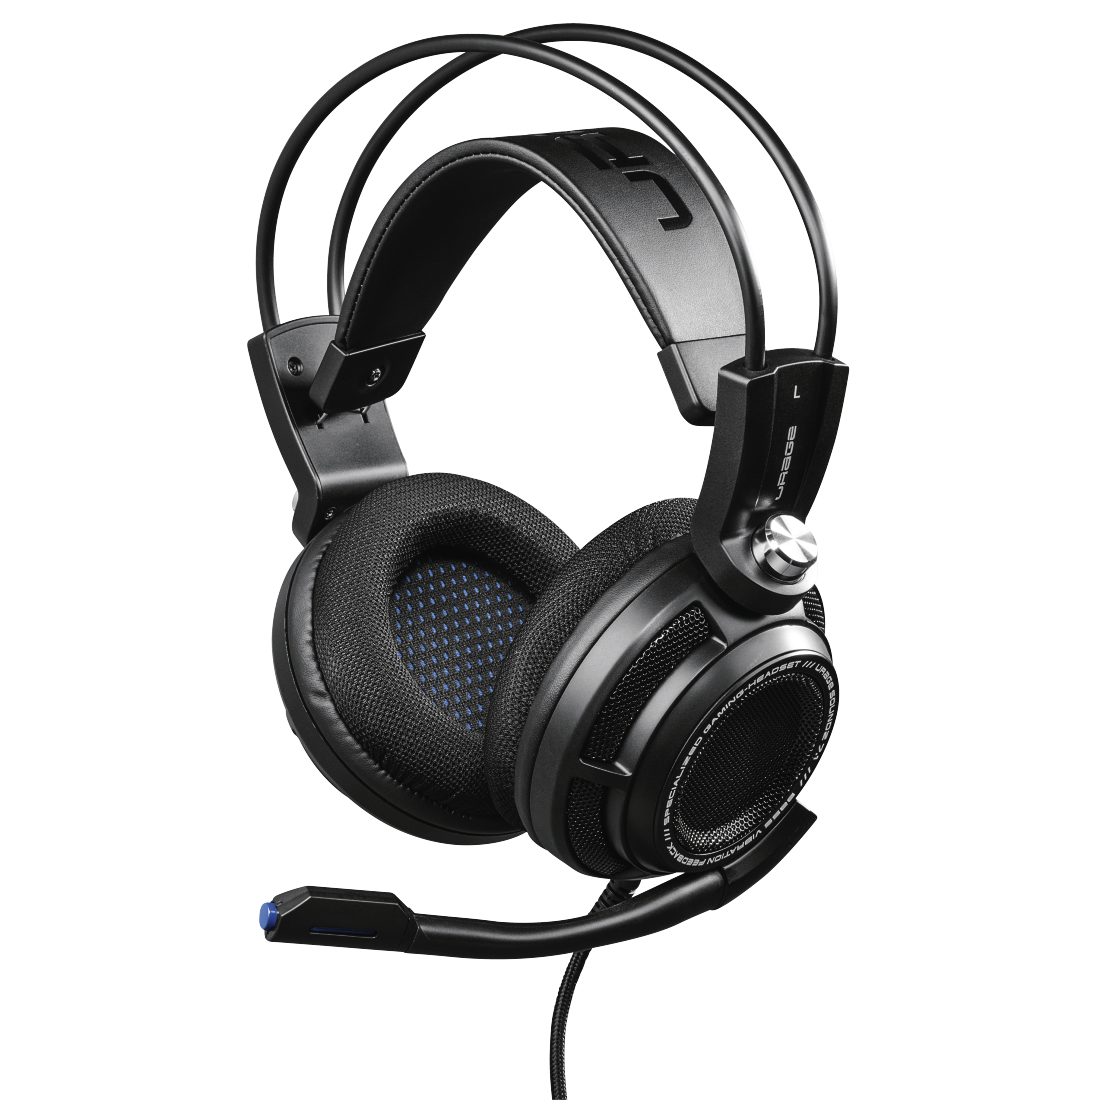 abx High-Res Image - Hama, uRage SoundZ 7.1 Gaming Headset, black